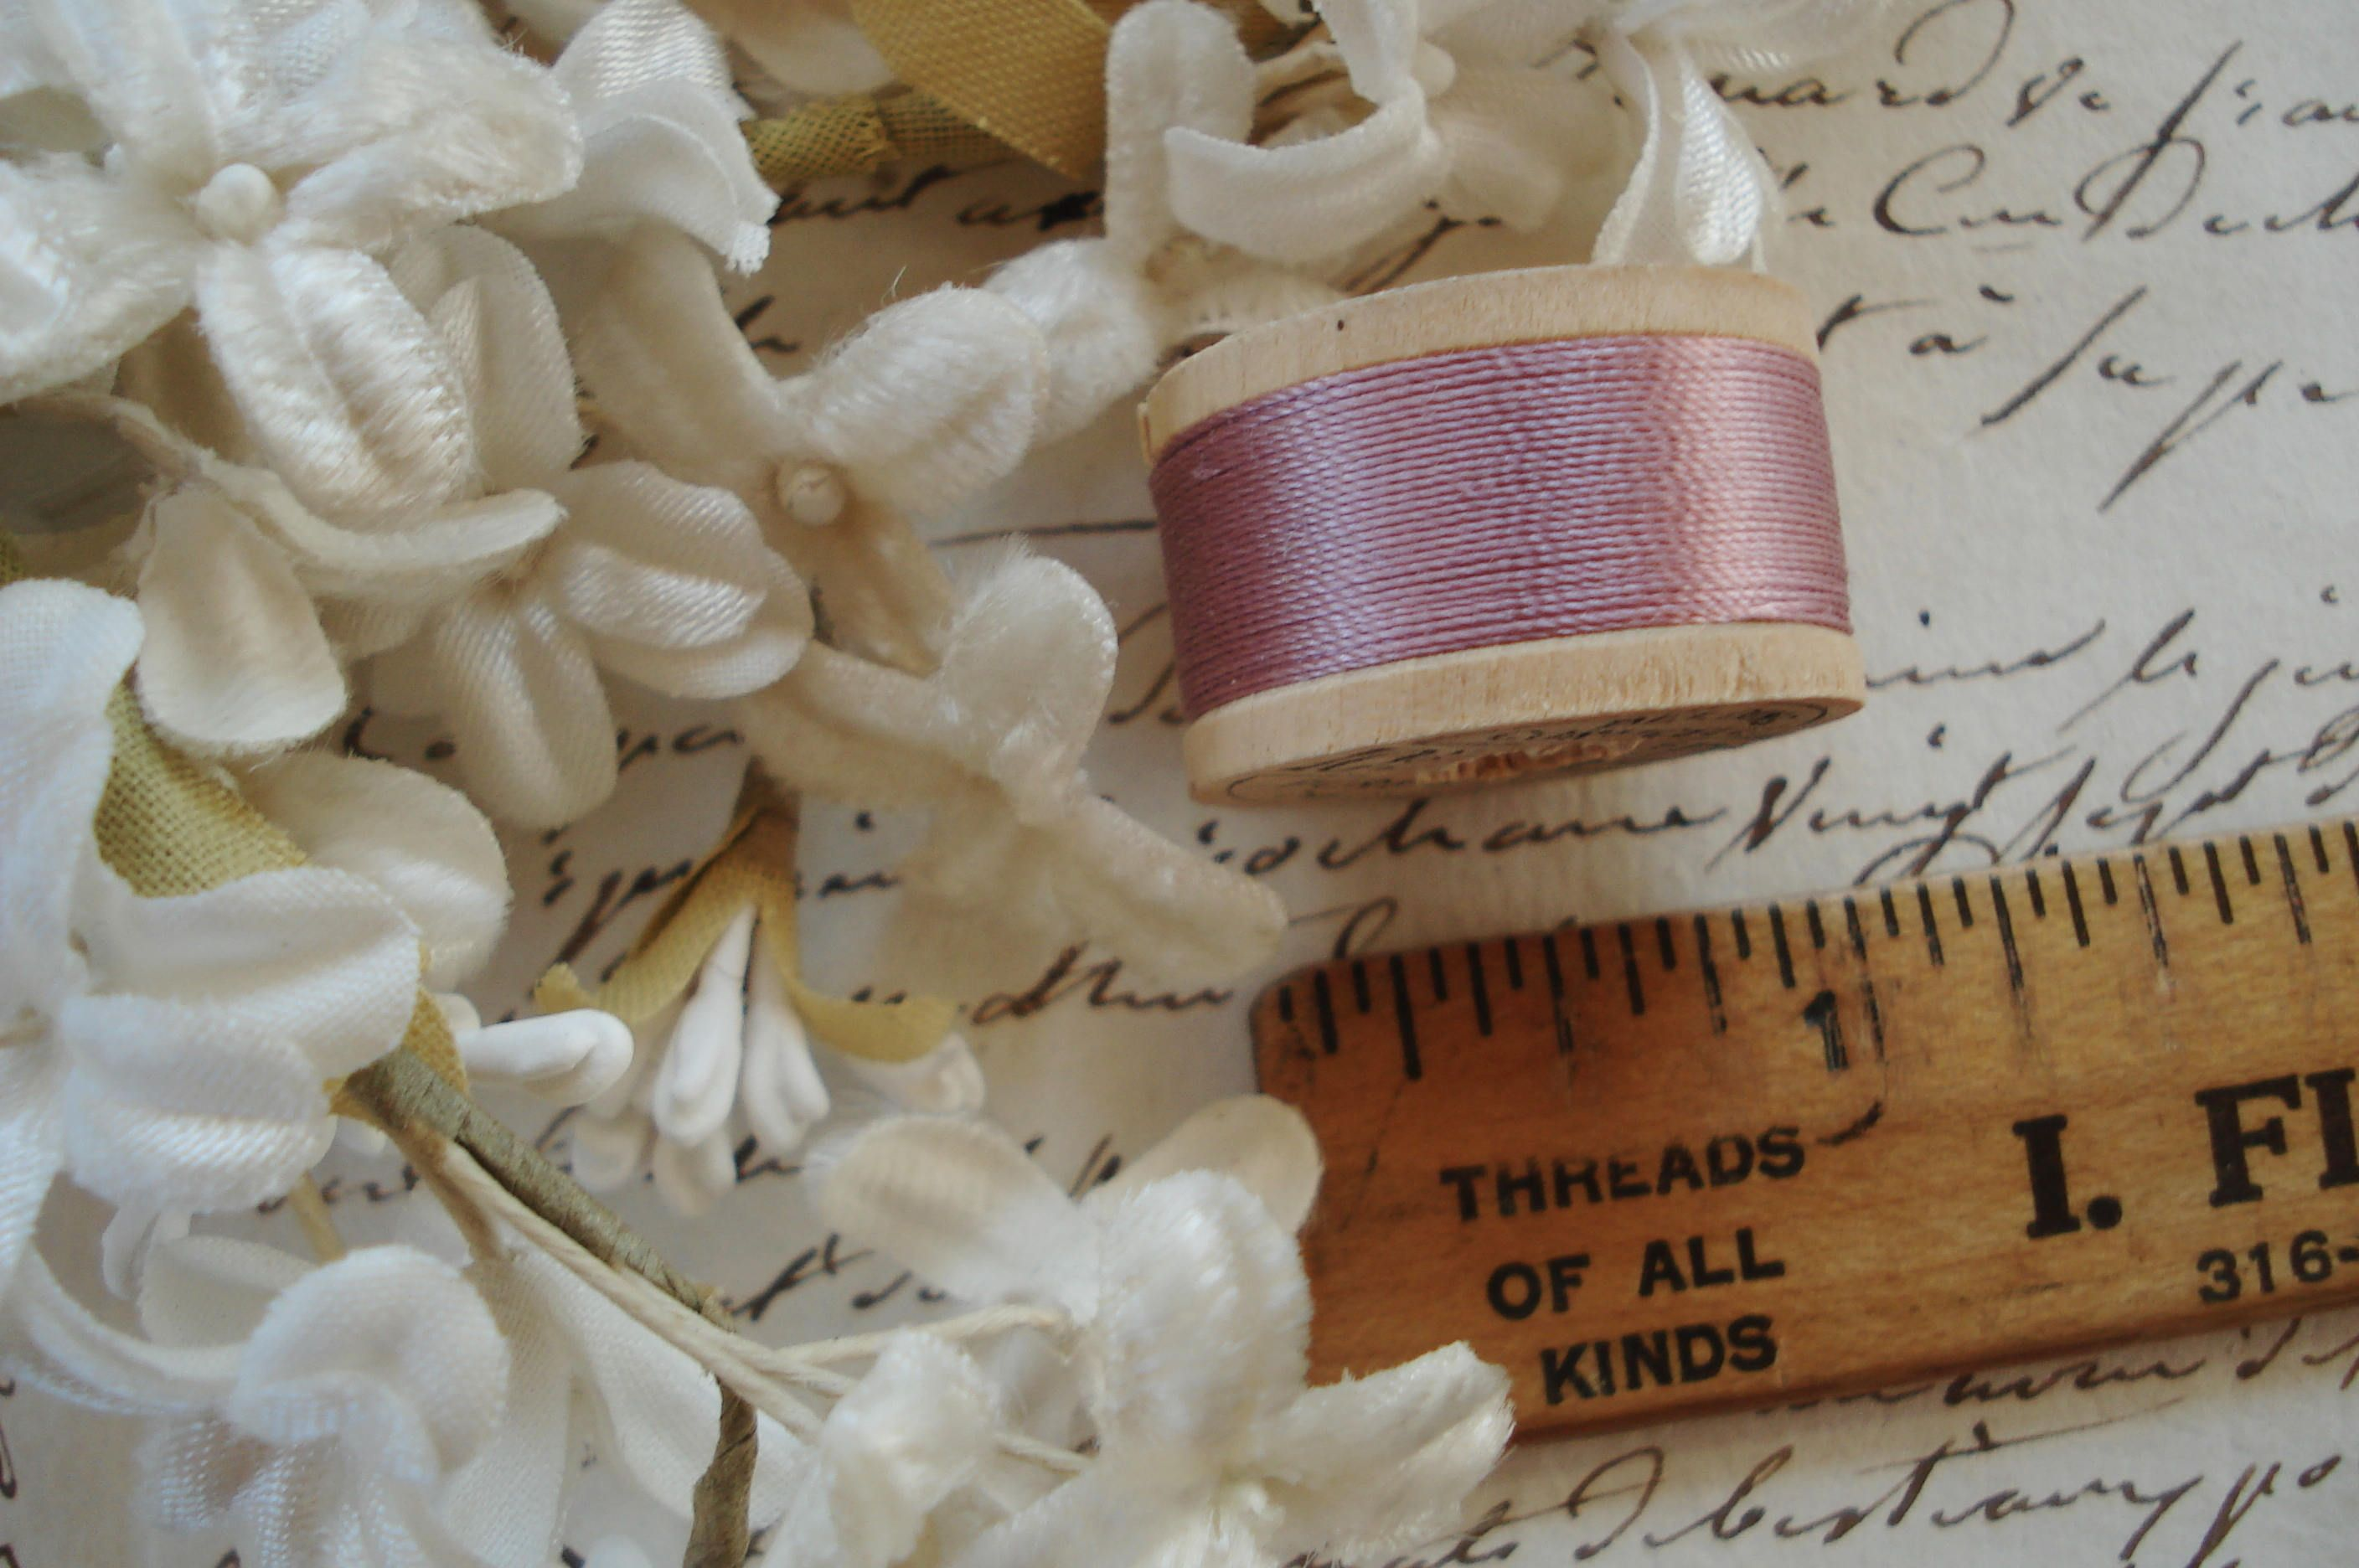 SALE 2 for 1 ! Vintage Antique Gold French MetallicTwist Thread Fly Tying